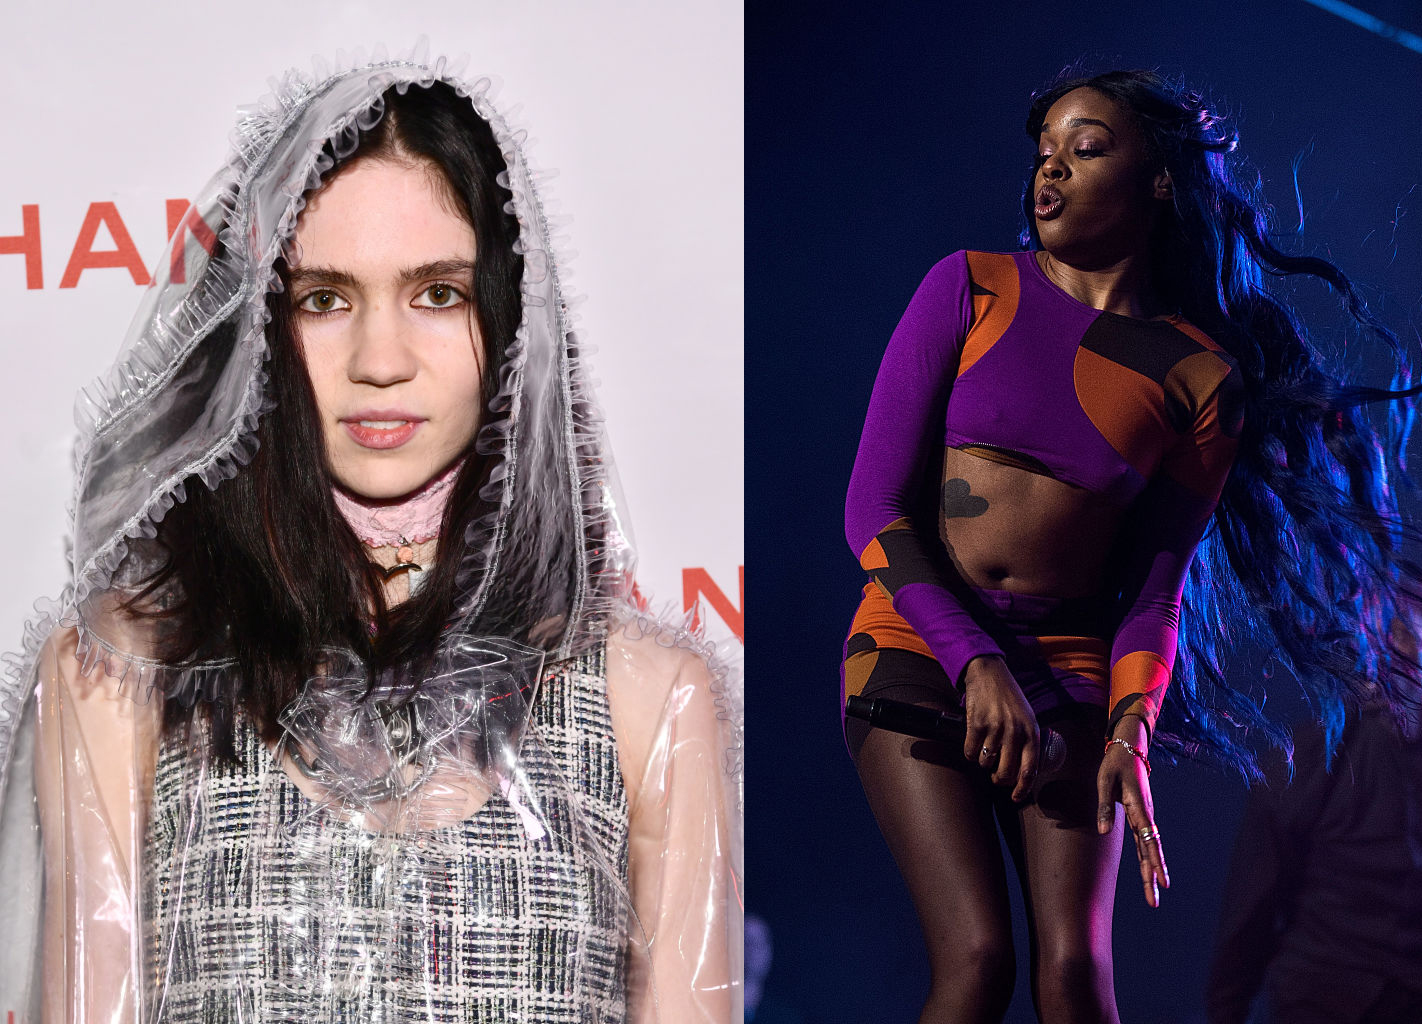 Grimes Reveals Her New Song Relates To Azalea Banks For Ruining Her Life, Rapper's Response Unveiled